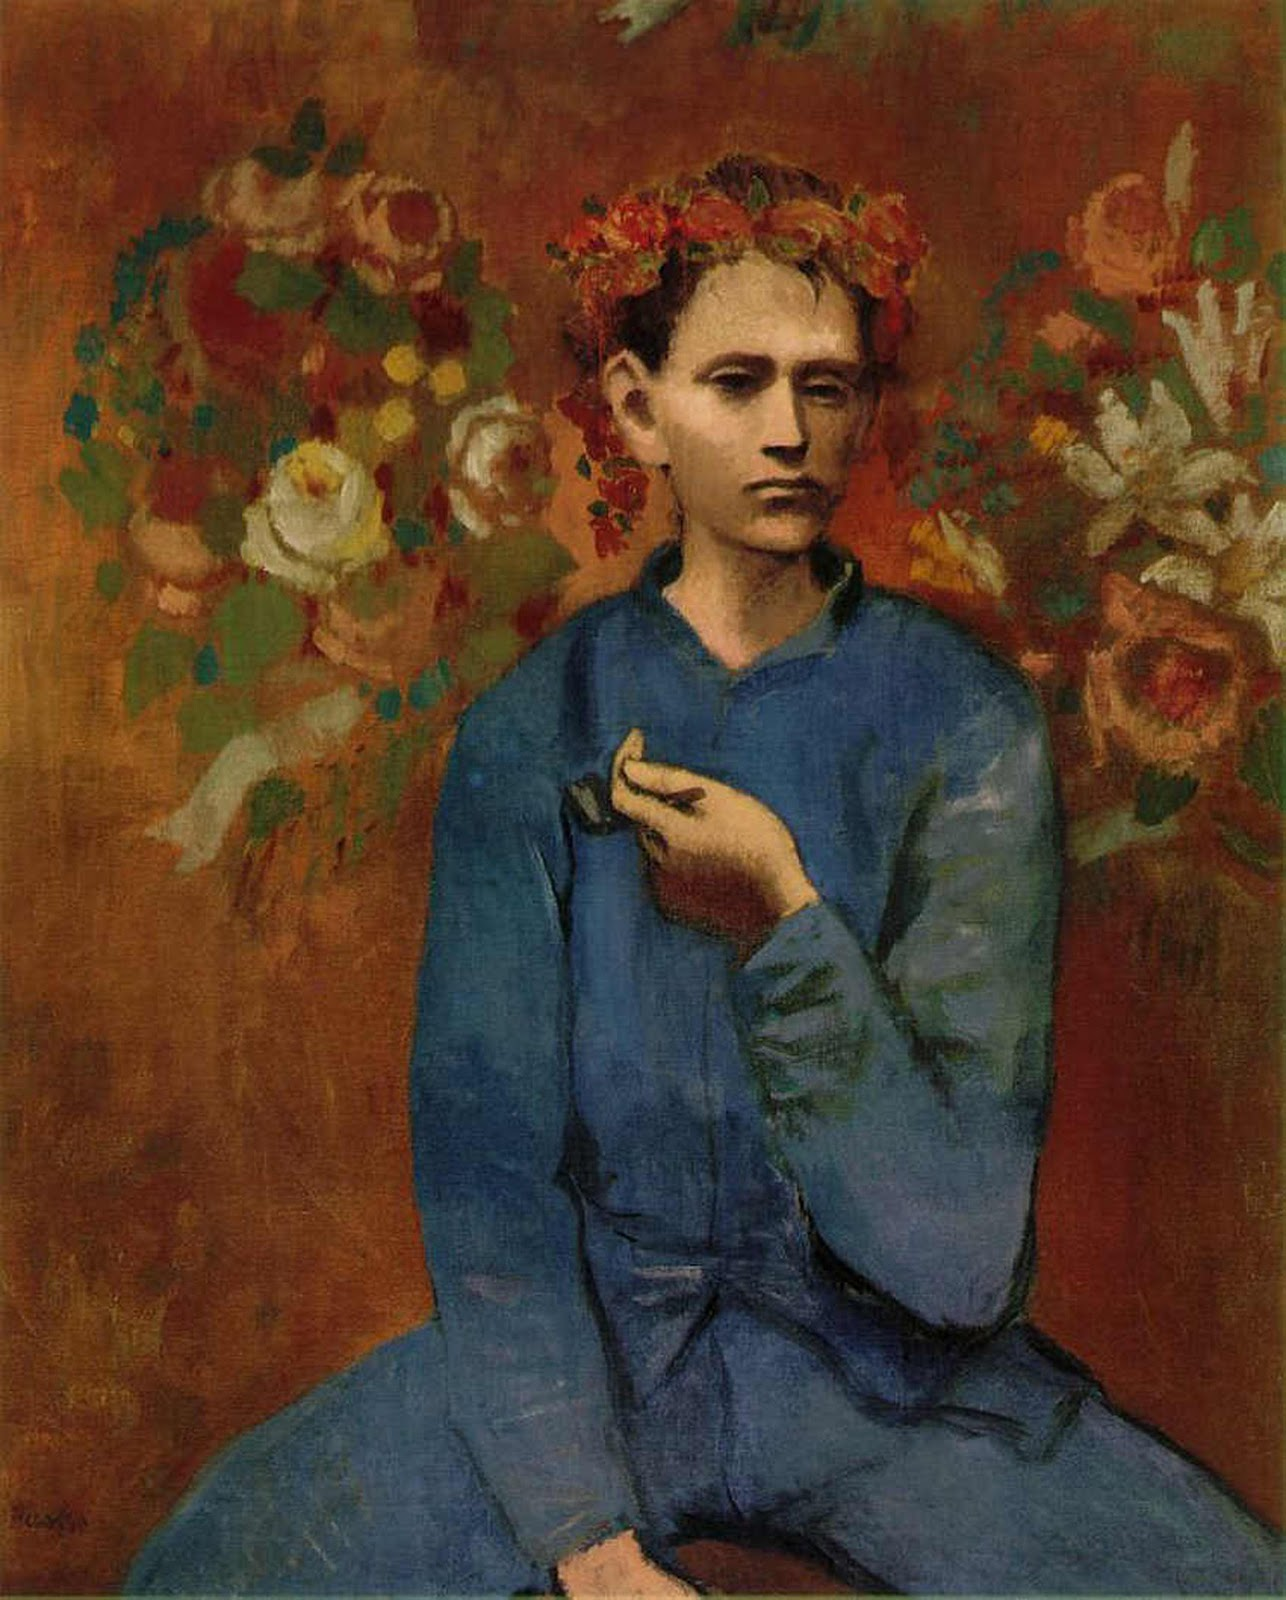 Garcon a la pipe - Seventh Most Expensive Painting in the World